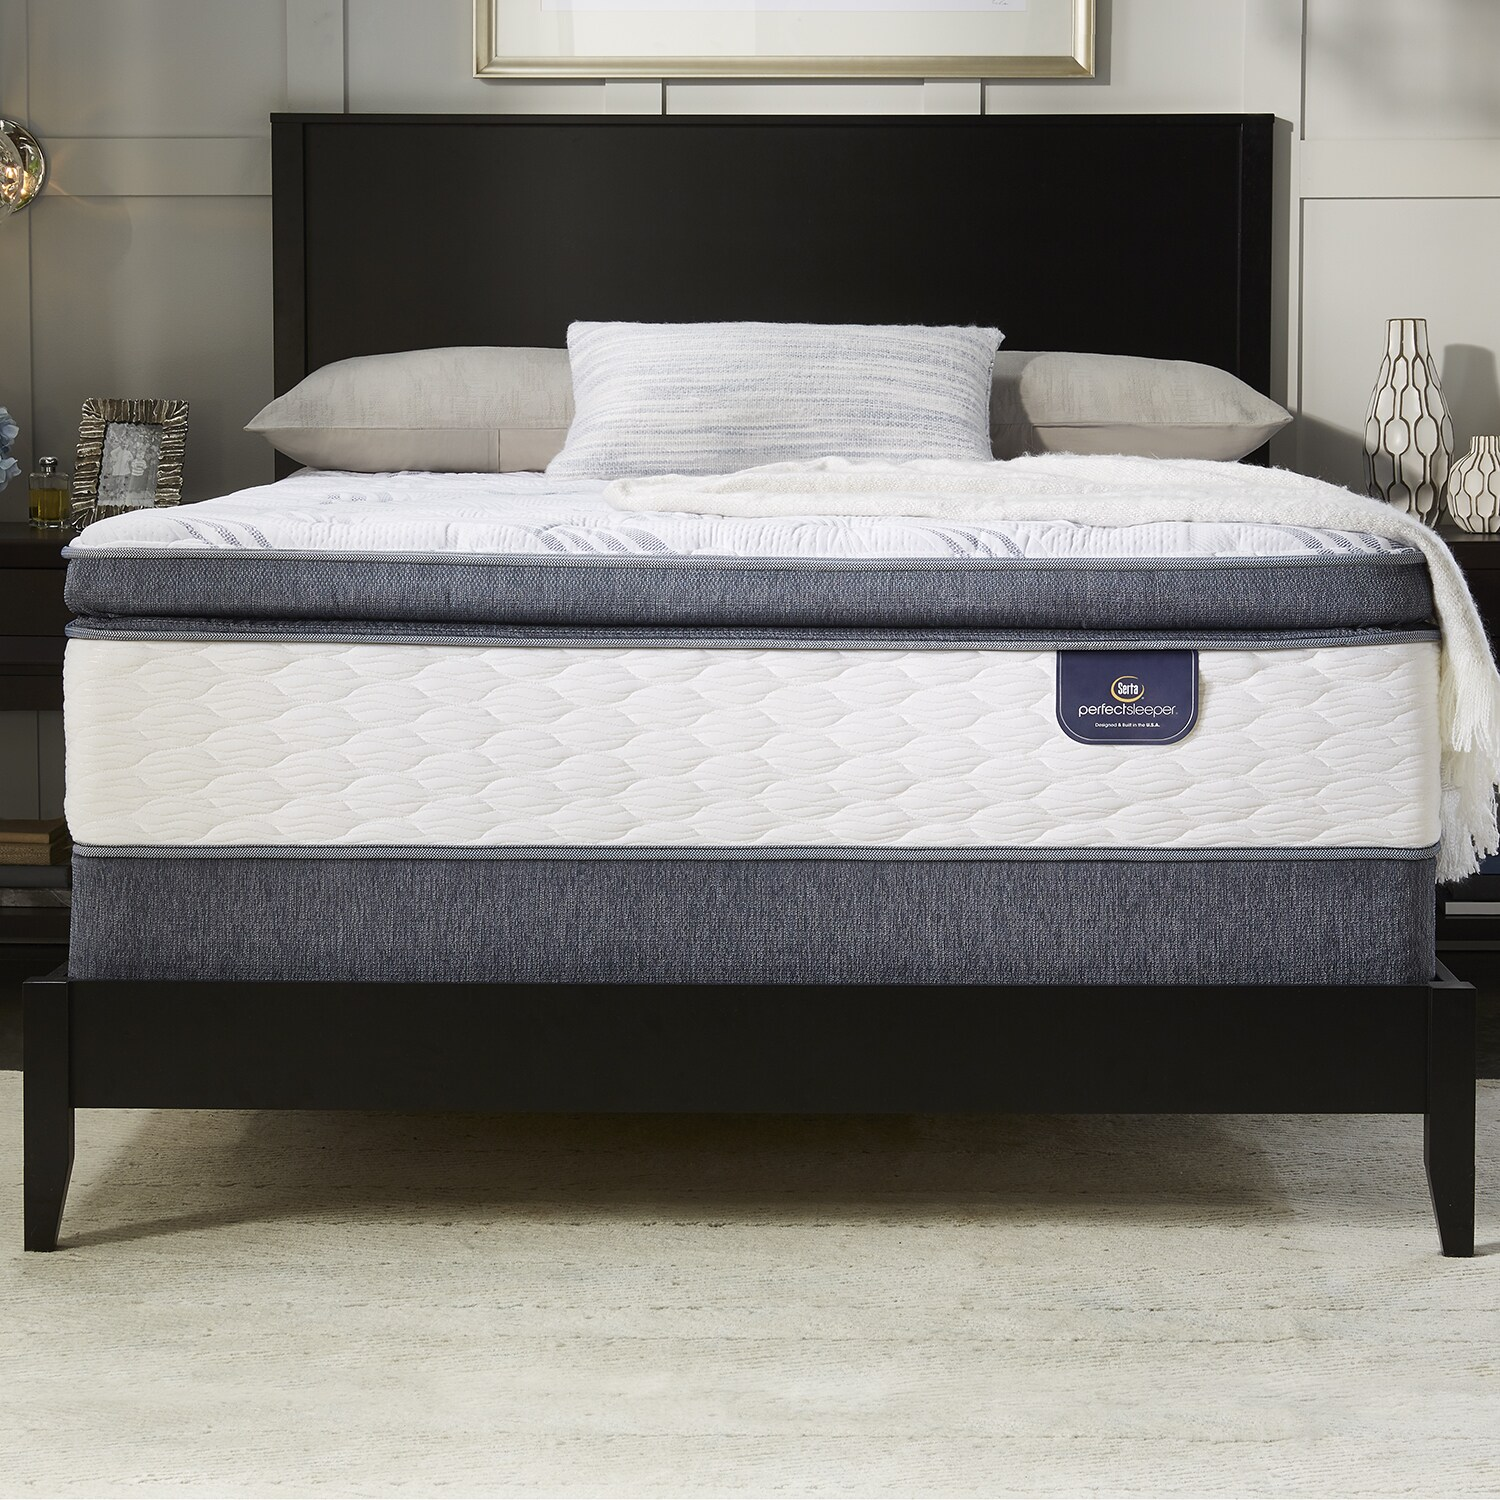 today sleeper box infuse perfect garden mattress top elite shipping free queen size set home spring and serta product euro overstock